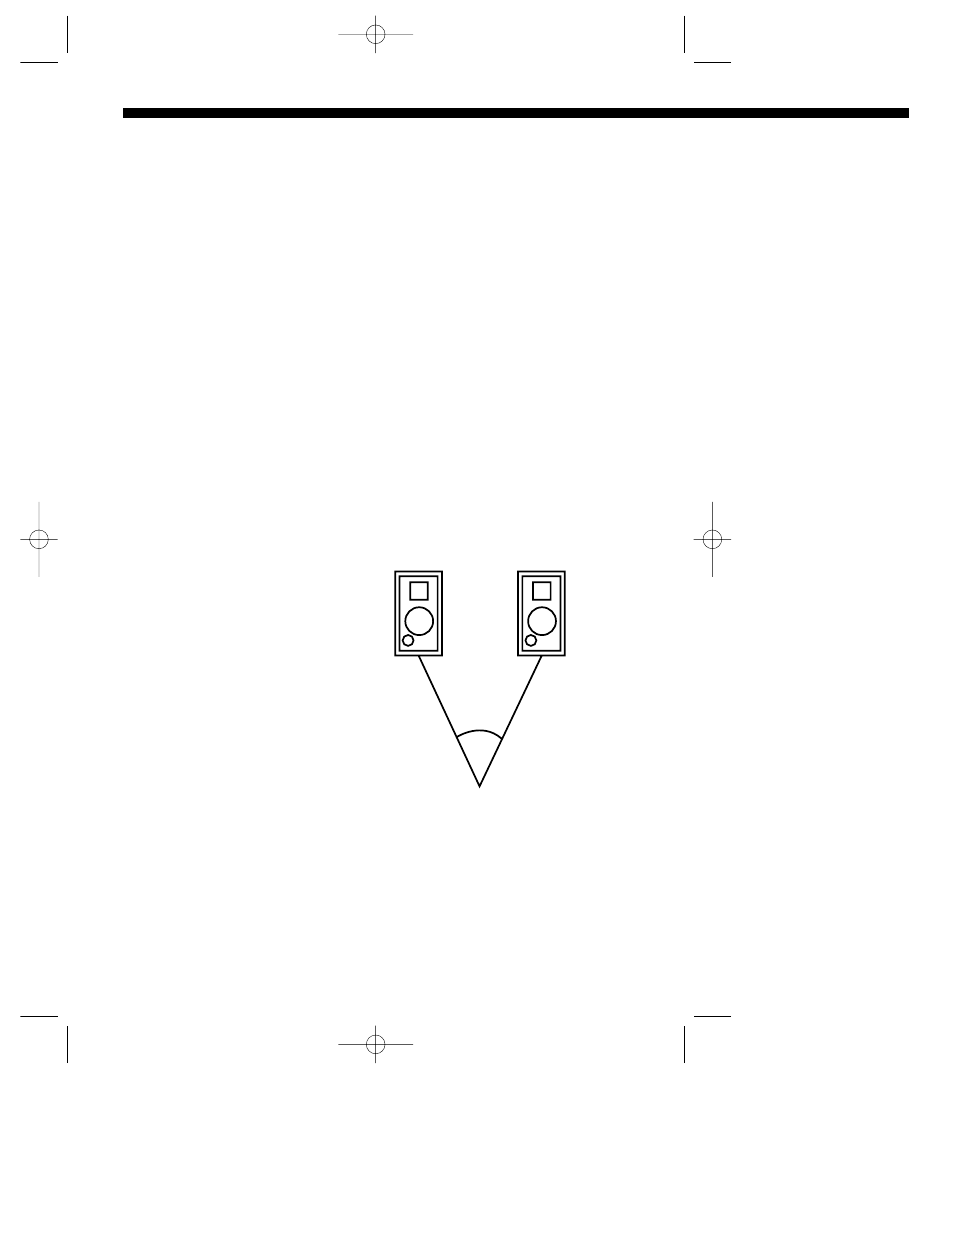 JBL MR308II User Manual | Page 2 / 8 | Also for: M5, MR25, MR310II